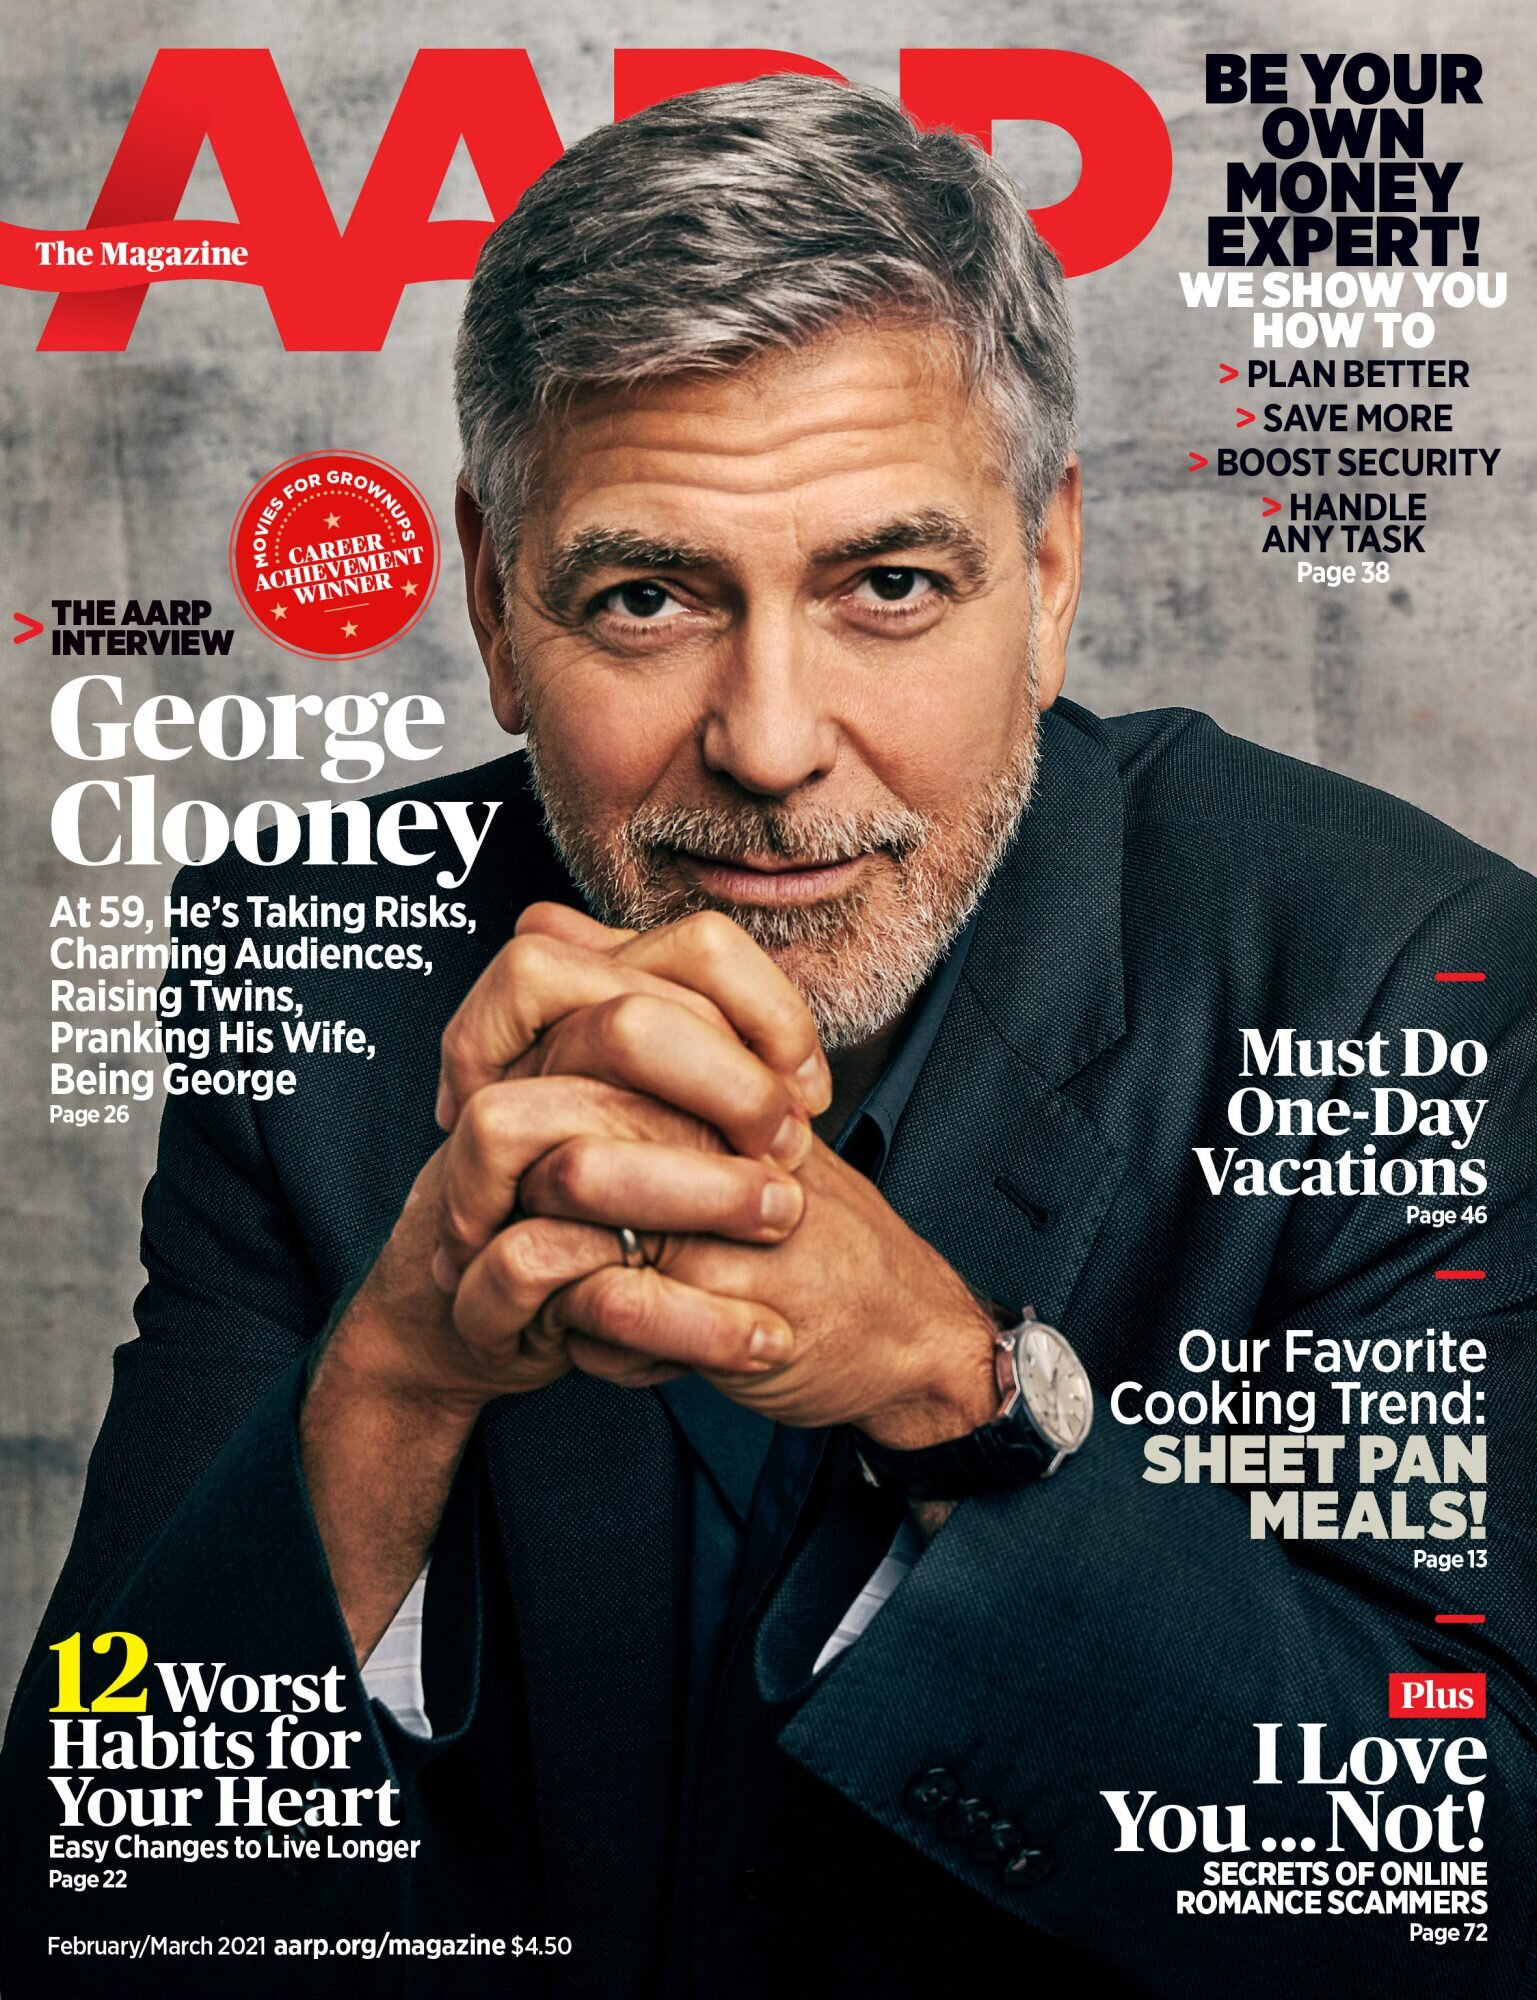 George Clooney Opens Up About Romance in Lockdown, His Children's Names, and the Worst Part of His Motorcycle Accident Image?url=https%3A%2F%2Fstatic.onecms.io%2Fwp-content%2Fuploads%2Fsites%2F20%2F2021%2F01%2F28%2FGeorge-Clooney-Cover2-1-2000